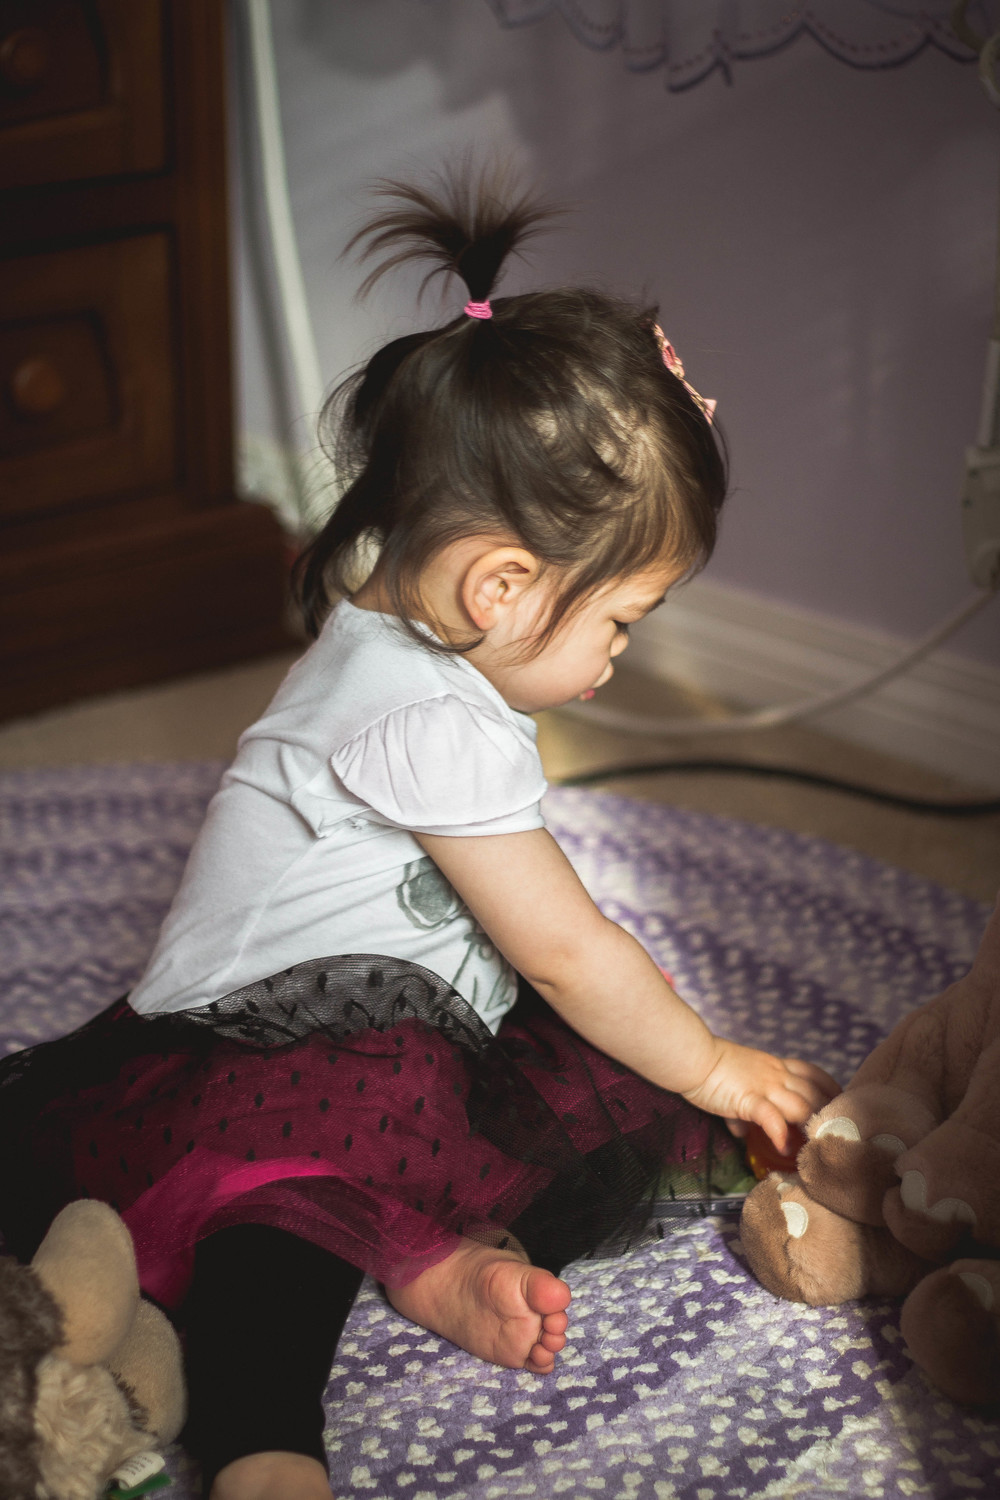 Selah at 1.5 years old playing with stuffed animals | by fit for the soul